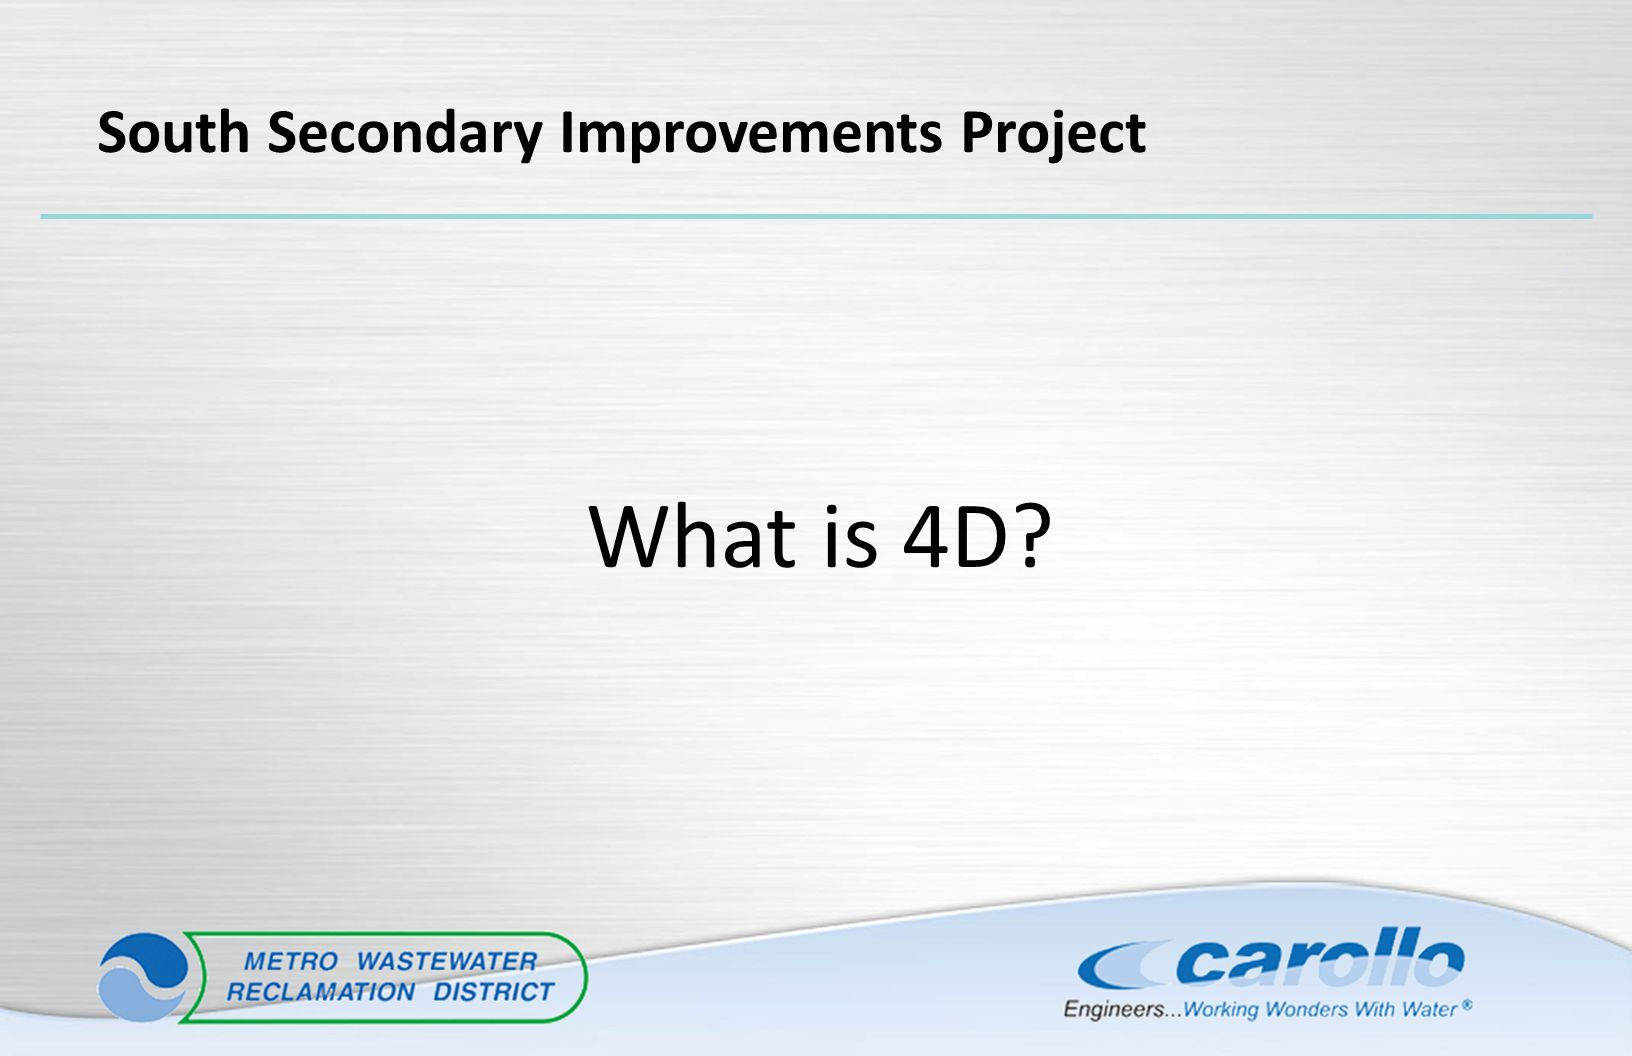 What is 4D? South Secondary Improvements Project